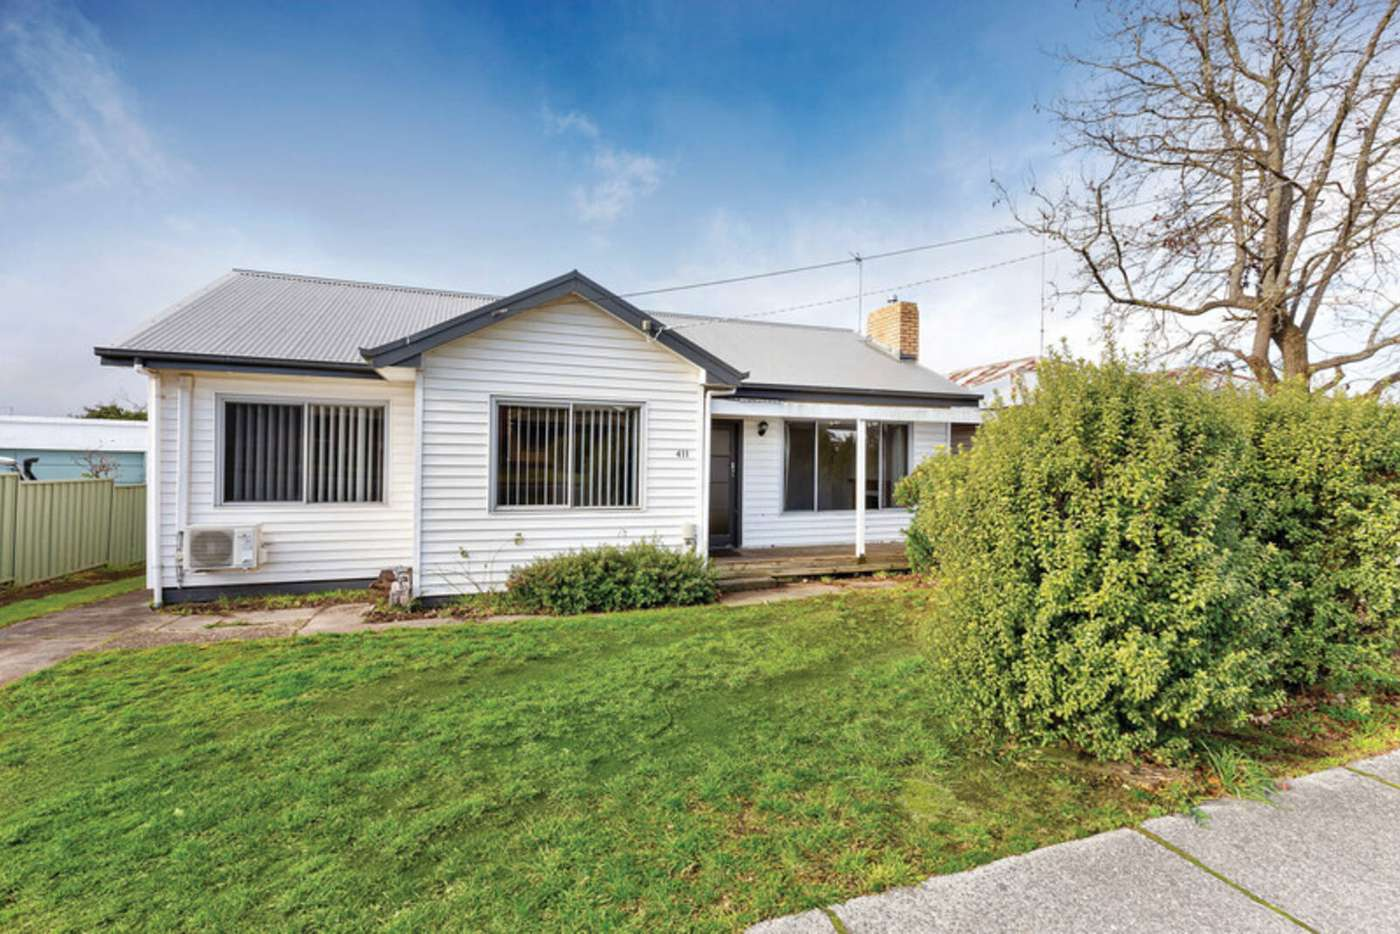 Main view of Homely house listing, 411 Clayton Street, Canadian VIC 3350